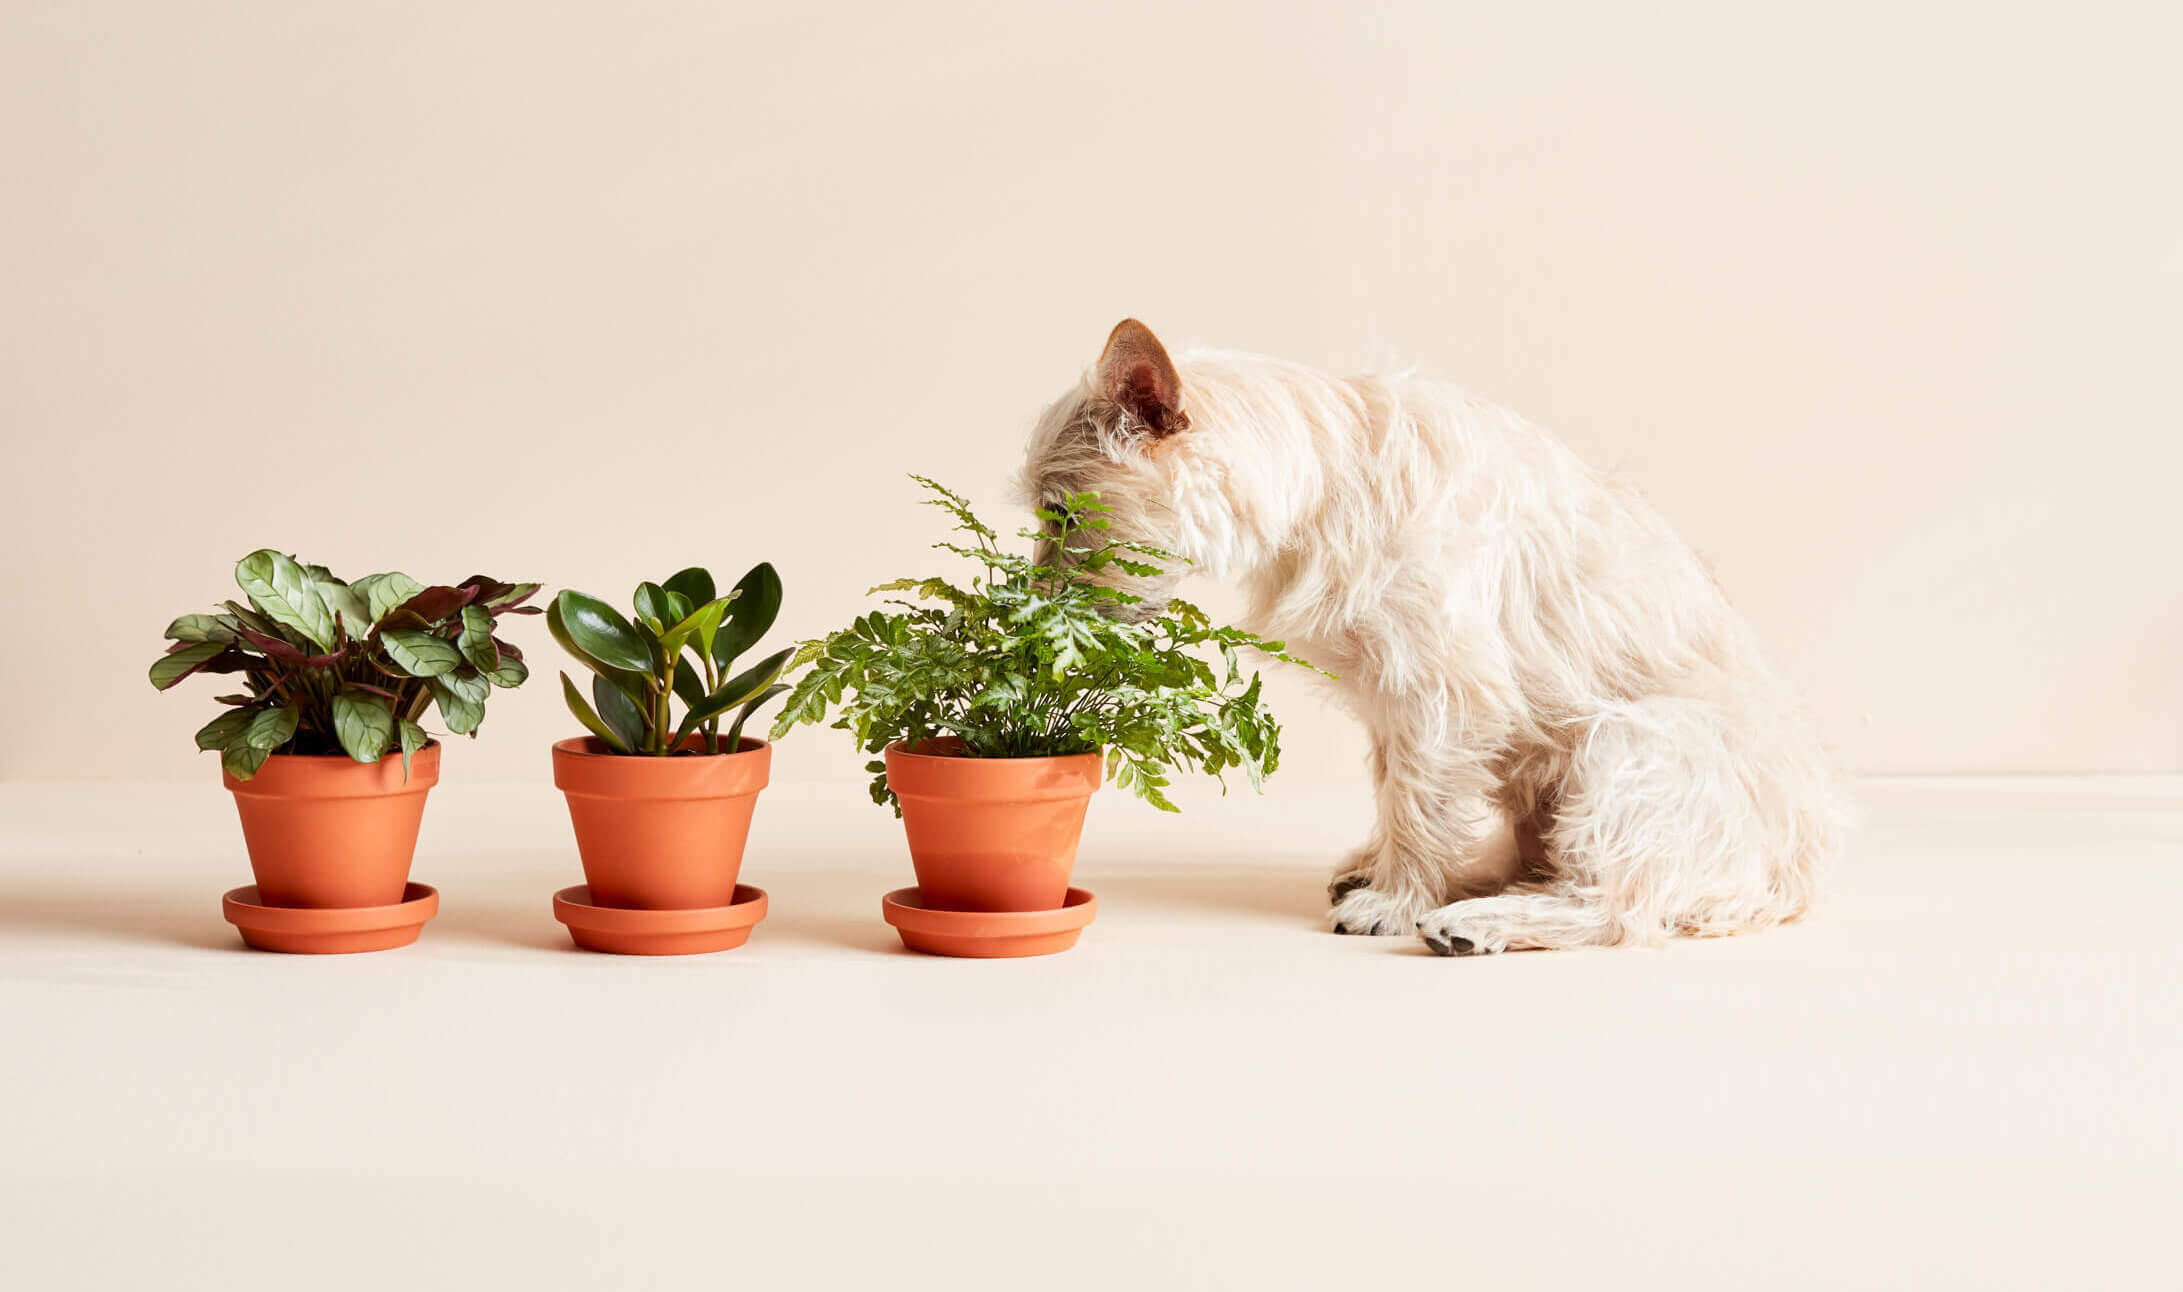 plants-and-pet